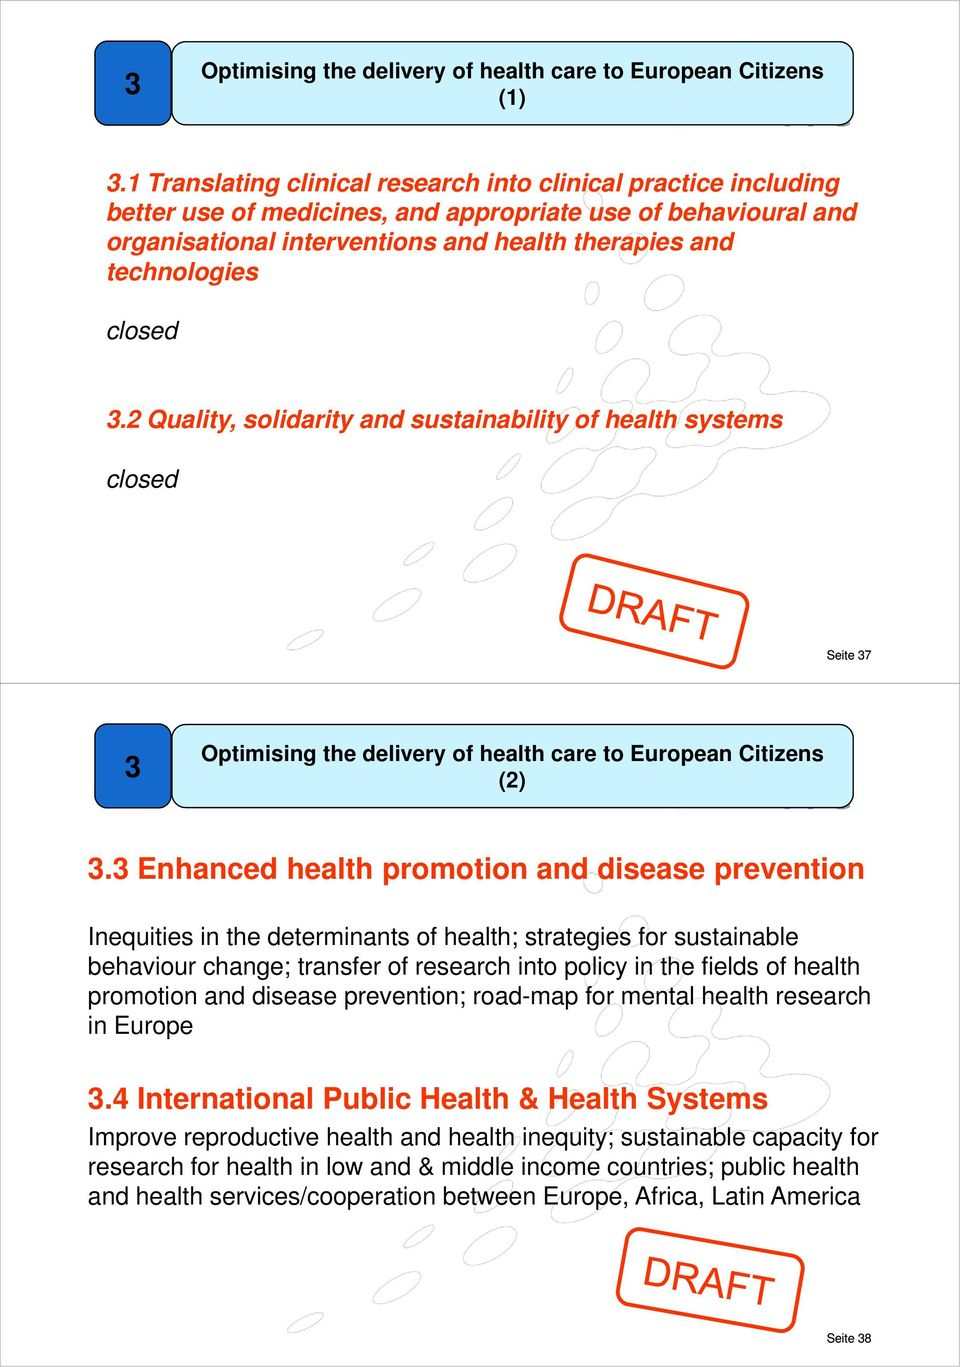 closed 3.2 Quality, solidarity and sustainability of health systems closed Seite 37 3 Optimising the delivery of health care to European Citizens (2) 3.